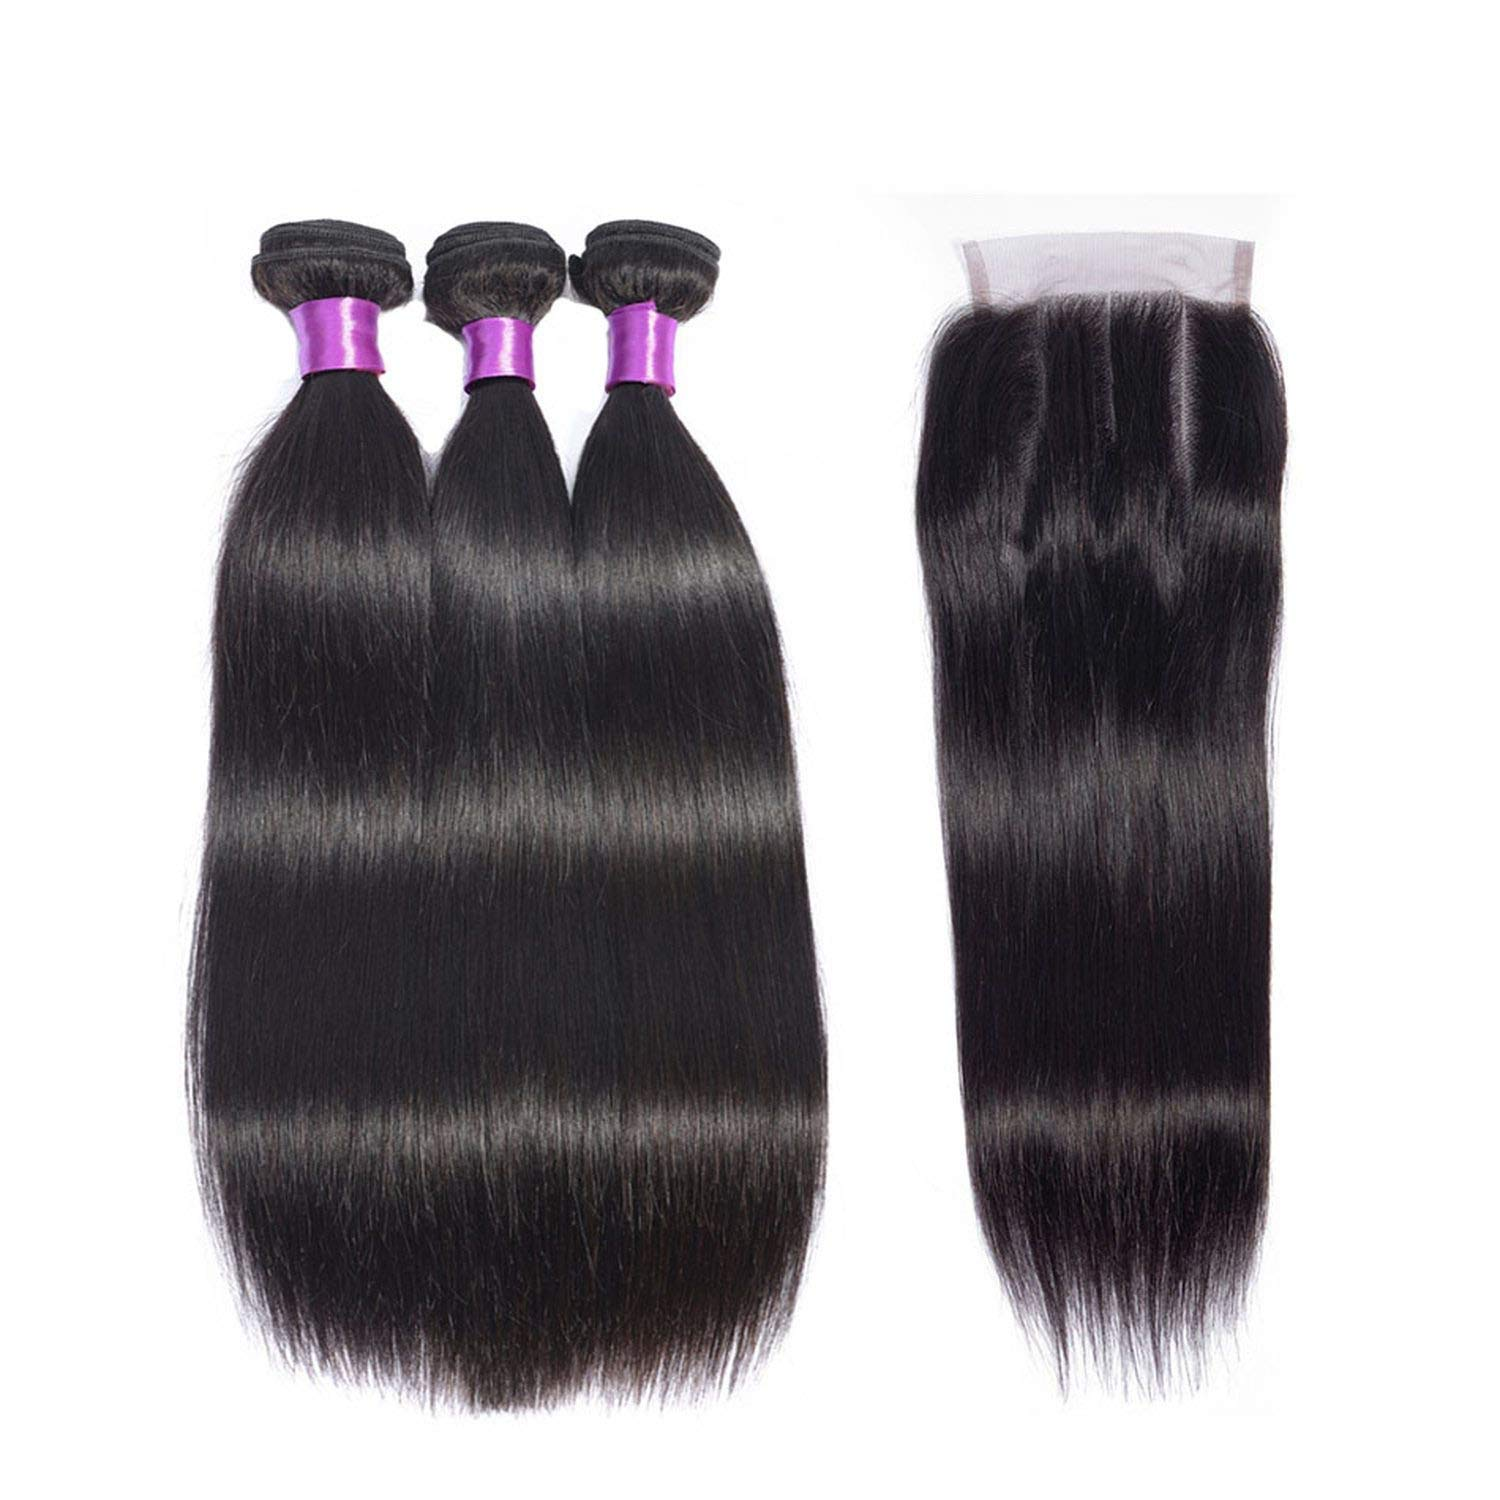 Brazilian Straight Hair Bundles With Closure Natural Color Human Hair 3 Bundles With Lace Closure Human Hair Extensions,14 14 14 with 12,Free Part by Little-Kiwi